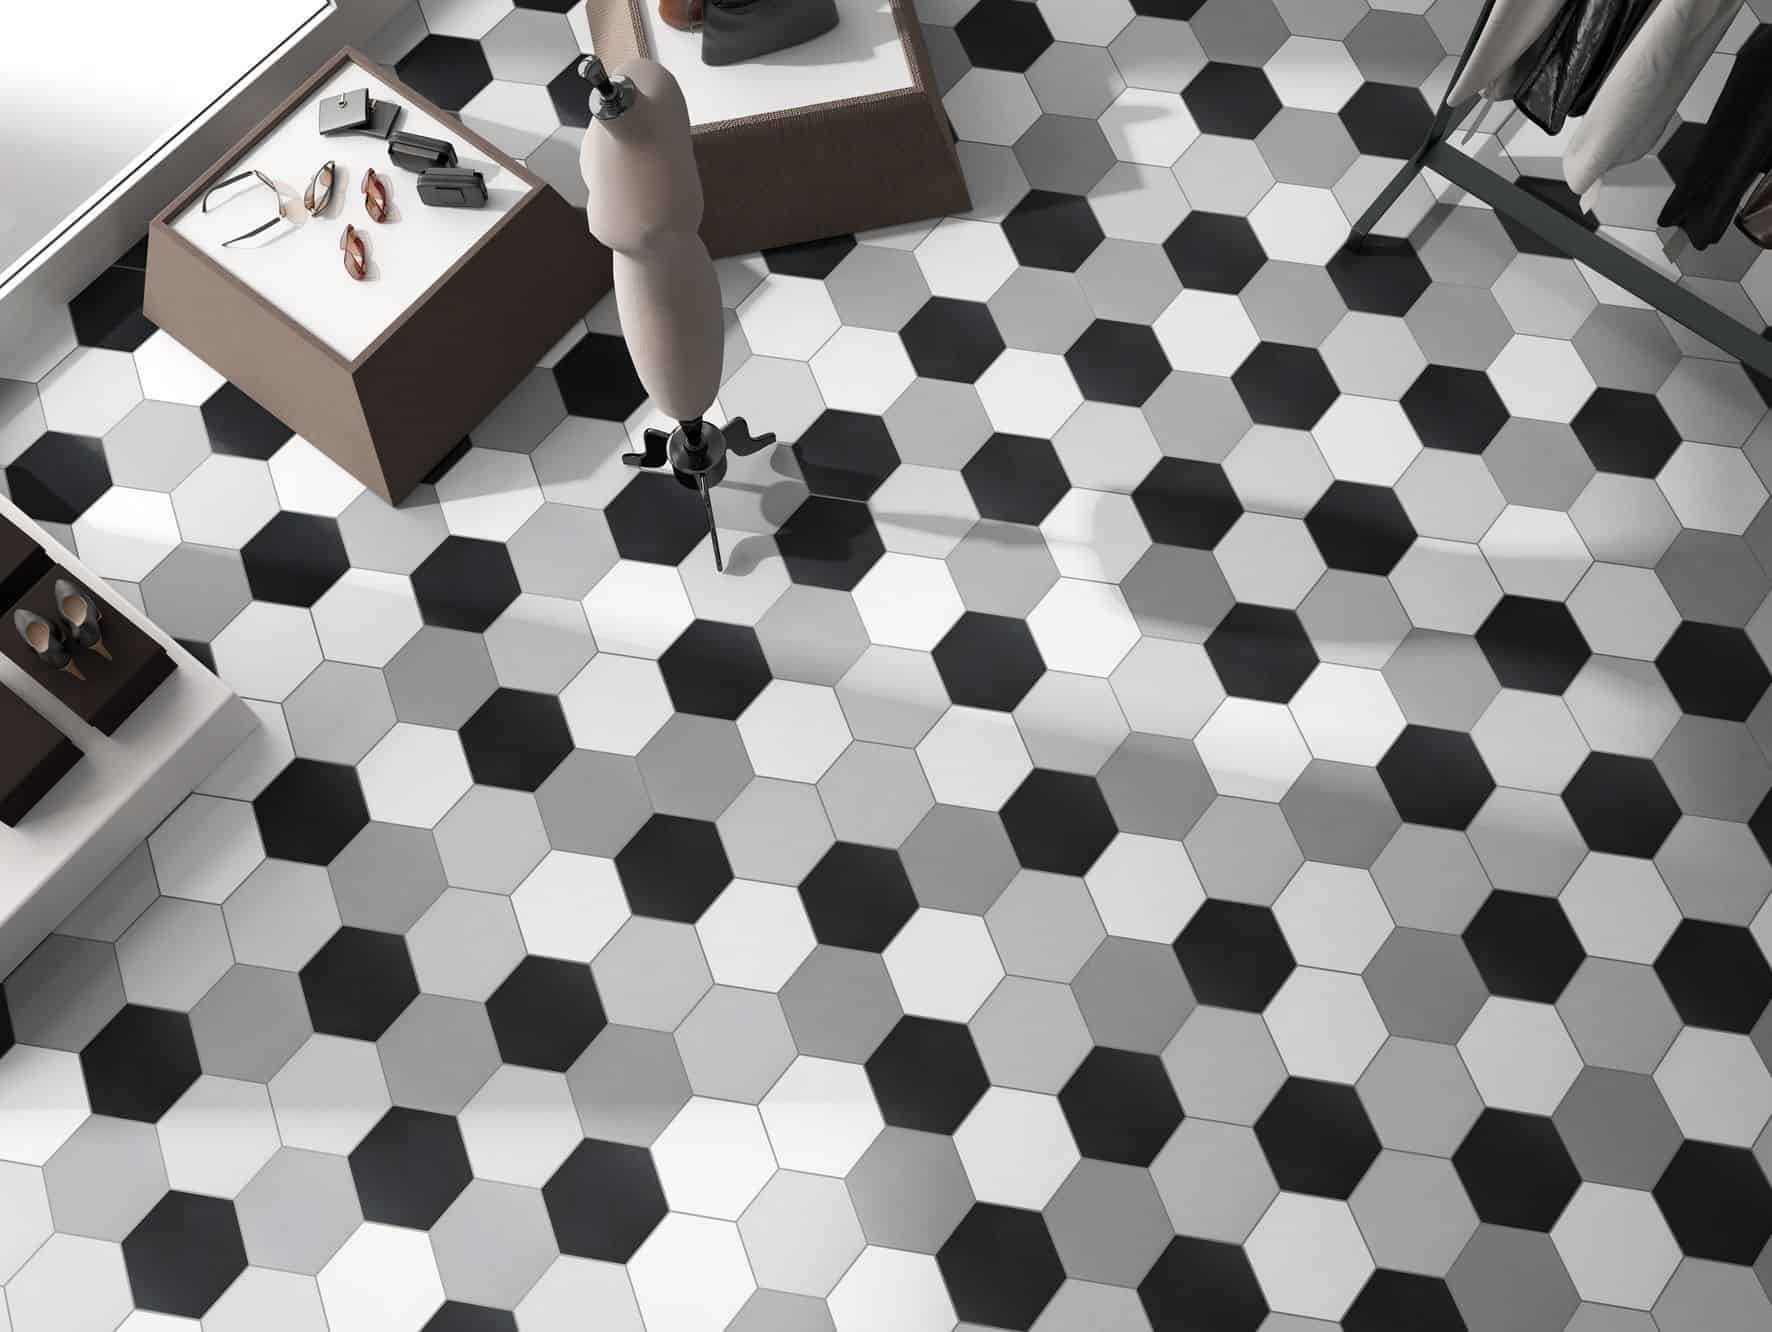 black Hexagon tile 220x250mm Deco basic black by Decobella tiles - South Africa Ideal for features in a bathroom or kitchen and suitable for wall or floor application.  250x220mm